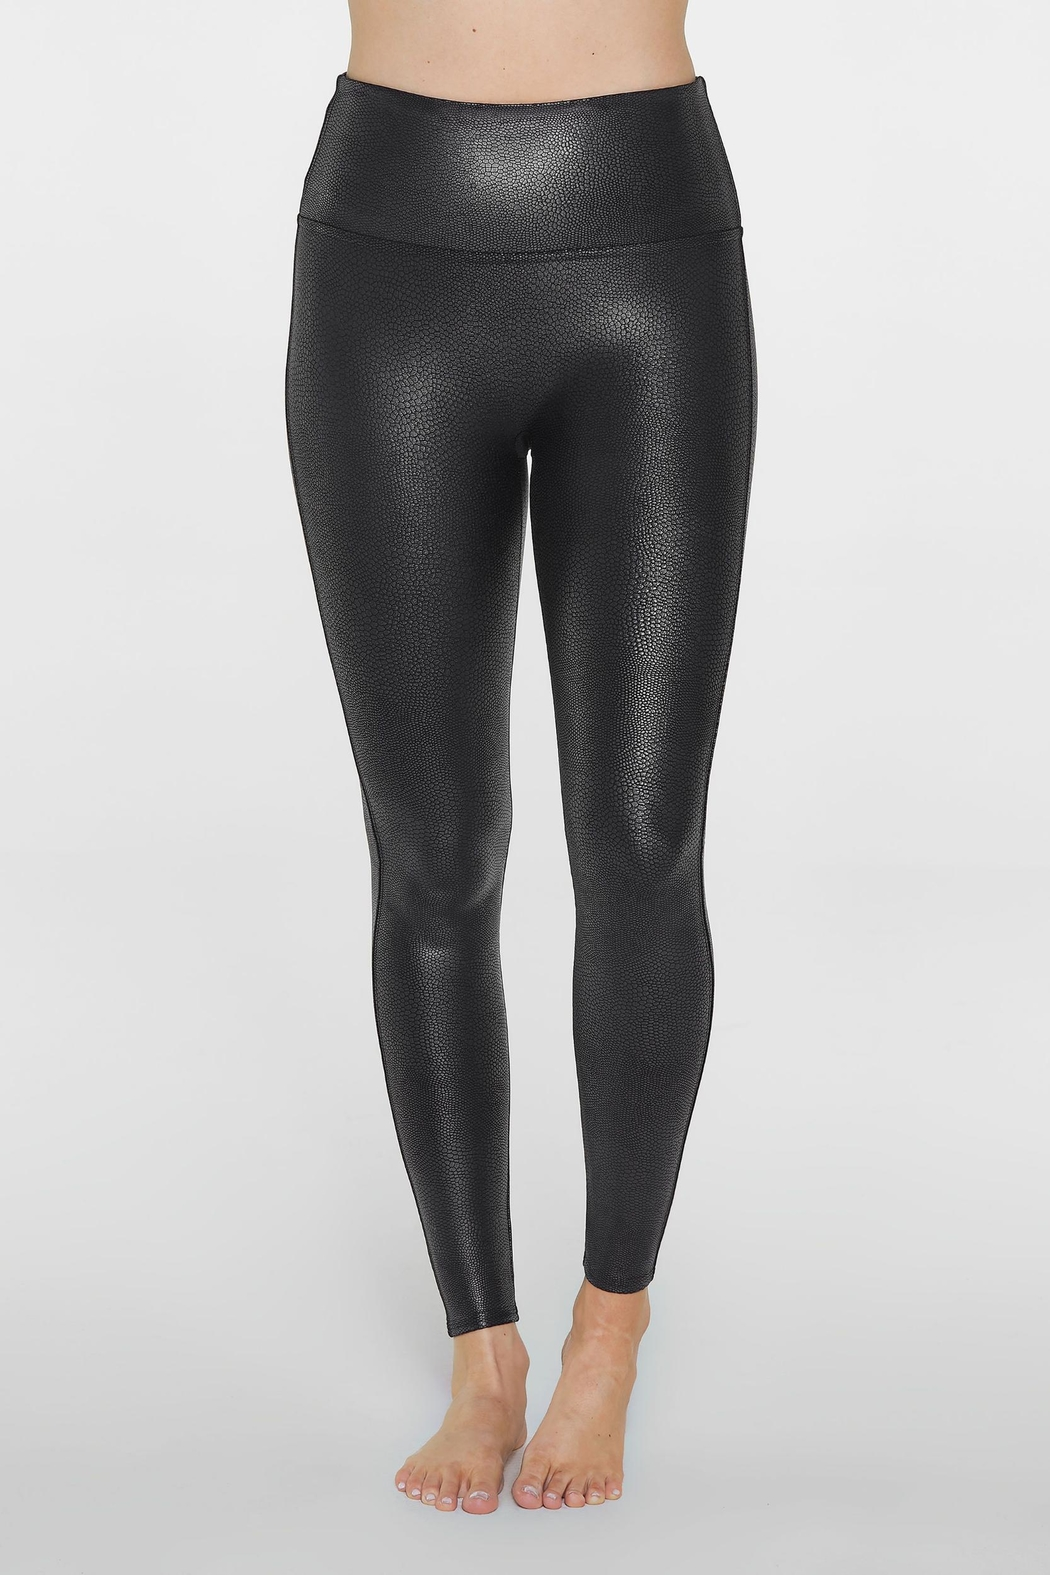 Spanx Faux-Leather Pebbled Legging - Main Image